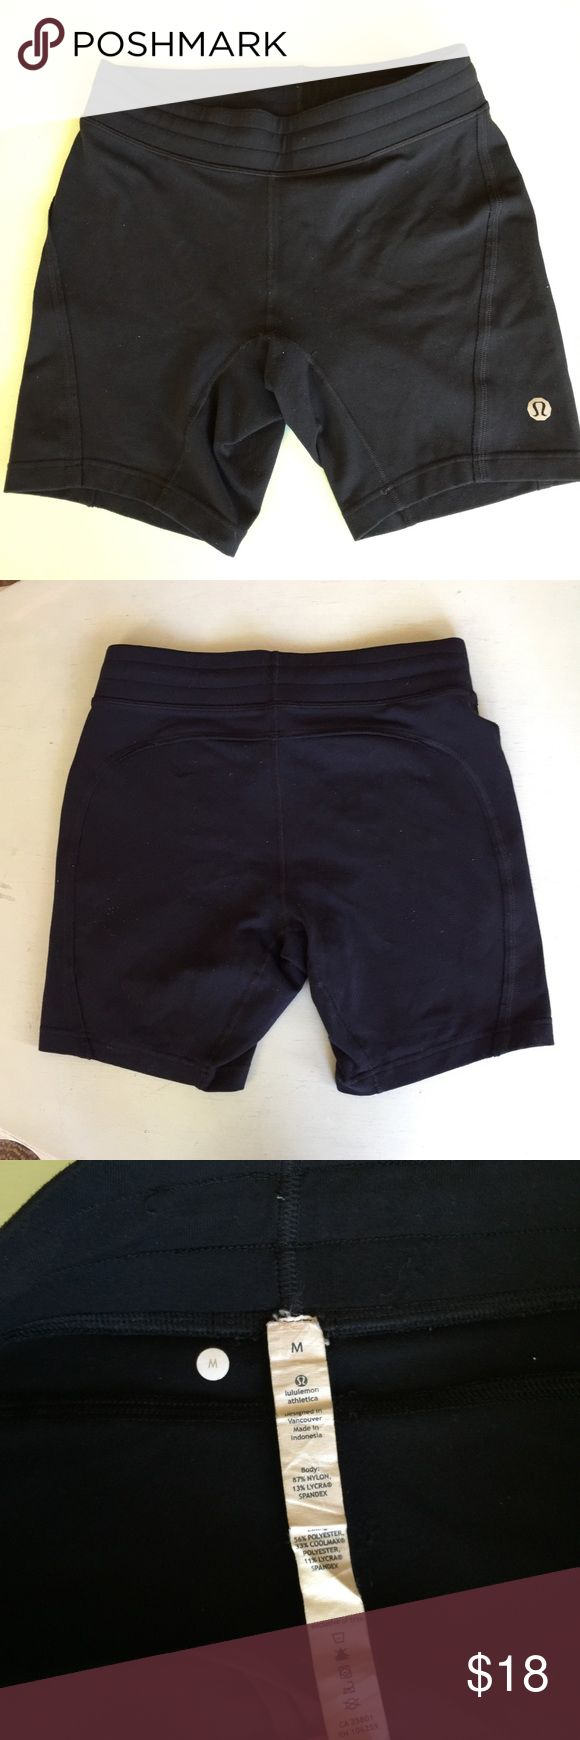 MENS Lululemon shorts size medium Black used Lululemon shorts. Shorter length and tighter fit. More of a bicycle type short. Drawstring on interior to tighten around the waist. Hang tag attached size m , medium lululemon athletica Shorts Athletic